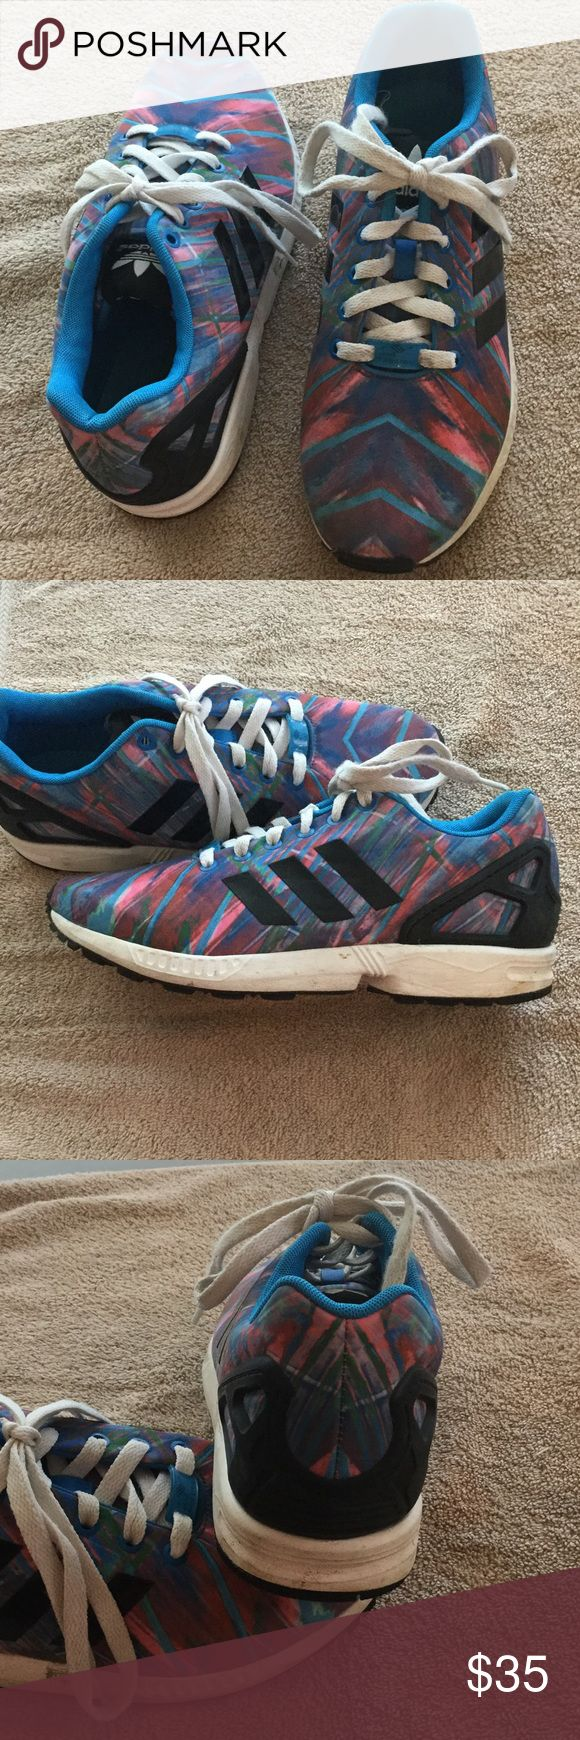 ADIDAS TORSION Men's ZX FLUX or 10.5 women's Multicolor Adidas ZX FLUX SIZE 8.5 Great condition. Adidas Shoes Athletic Shoes